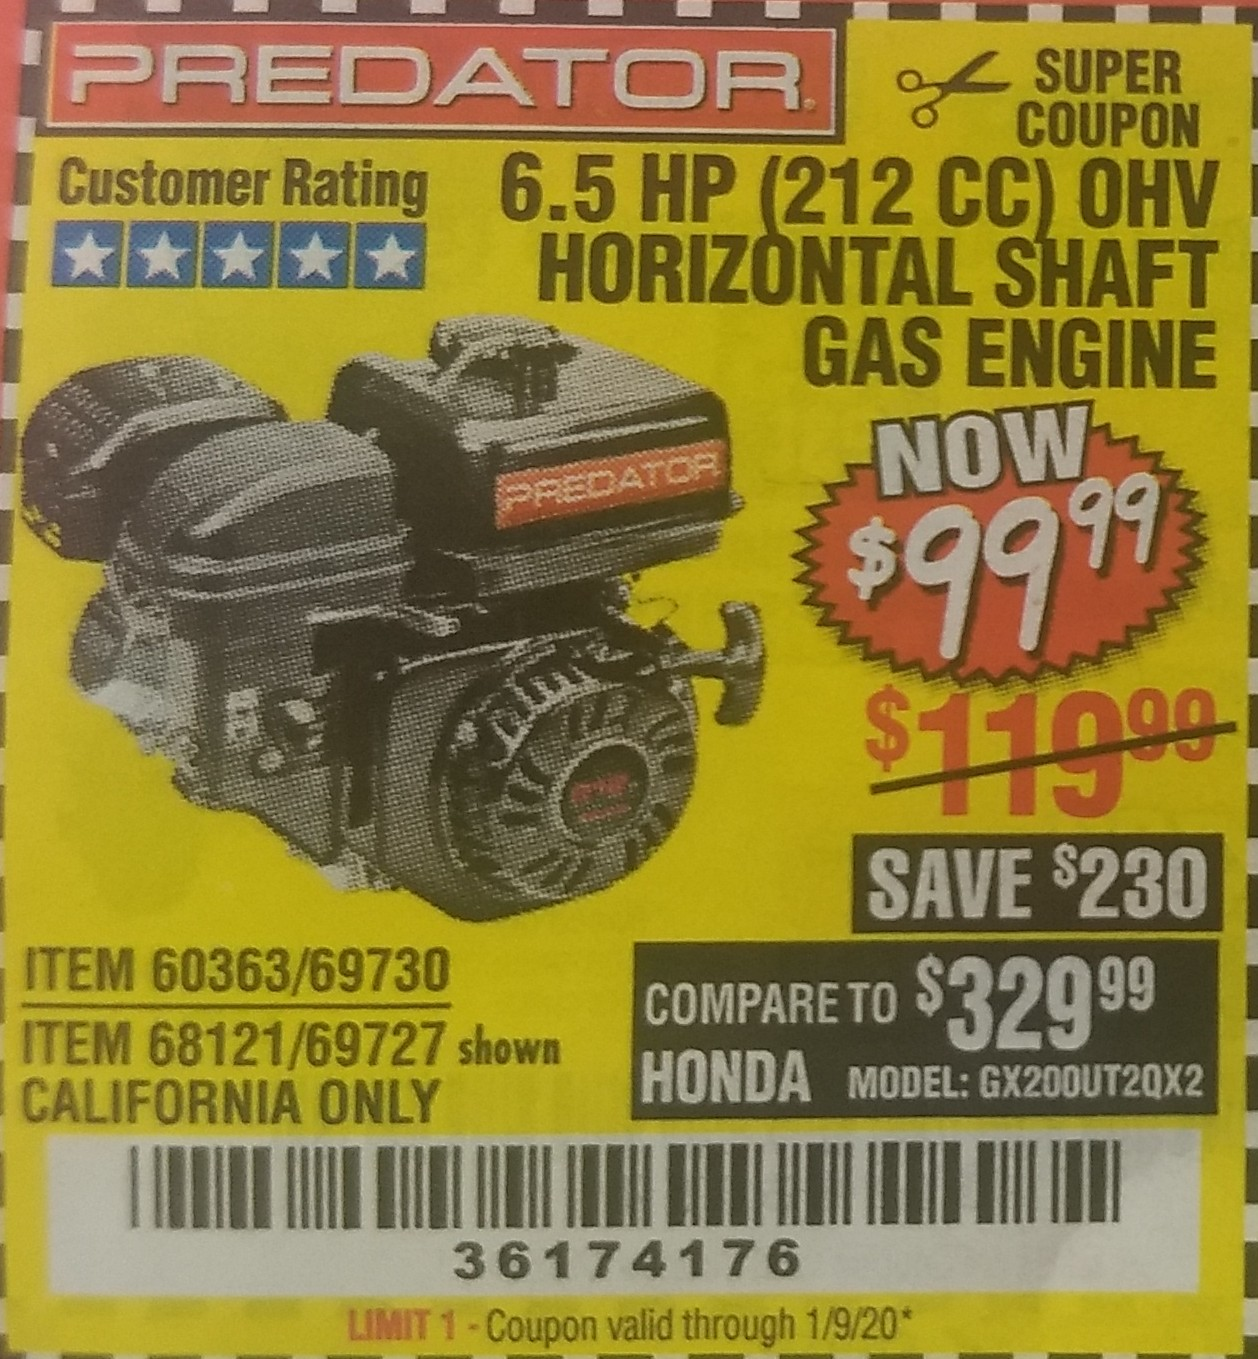 Harbor Freight 6.5 HP (212 CC) OHV HORIZONTAL SHAFT GAS ENGINES coupon